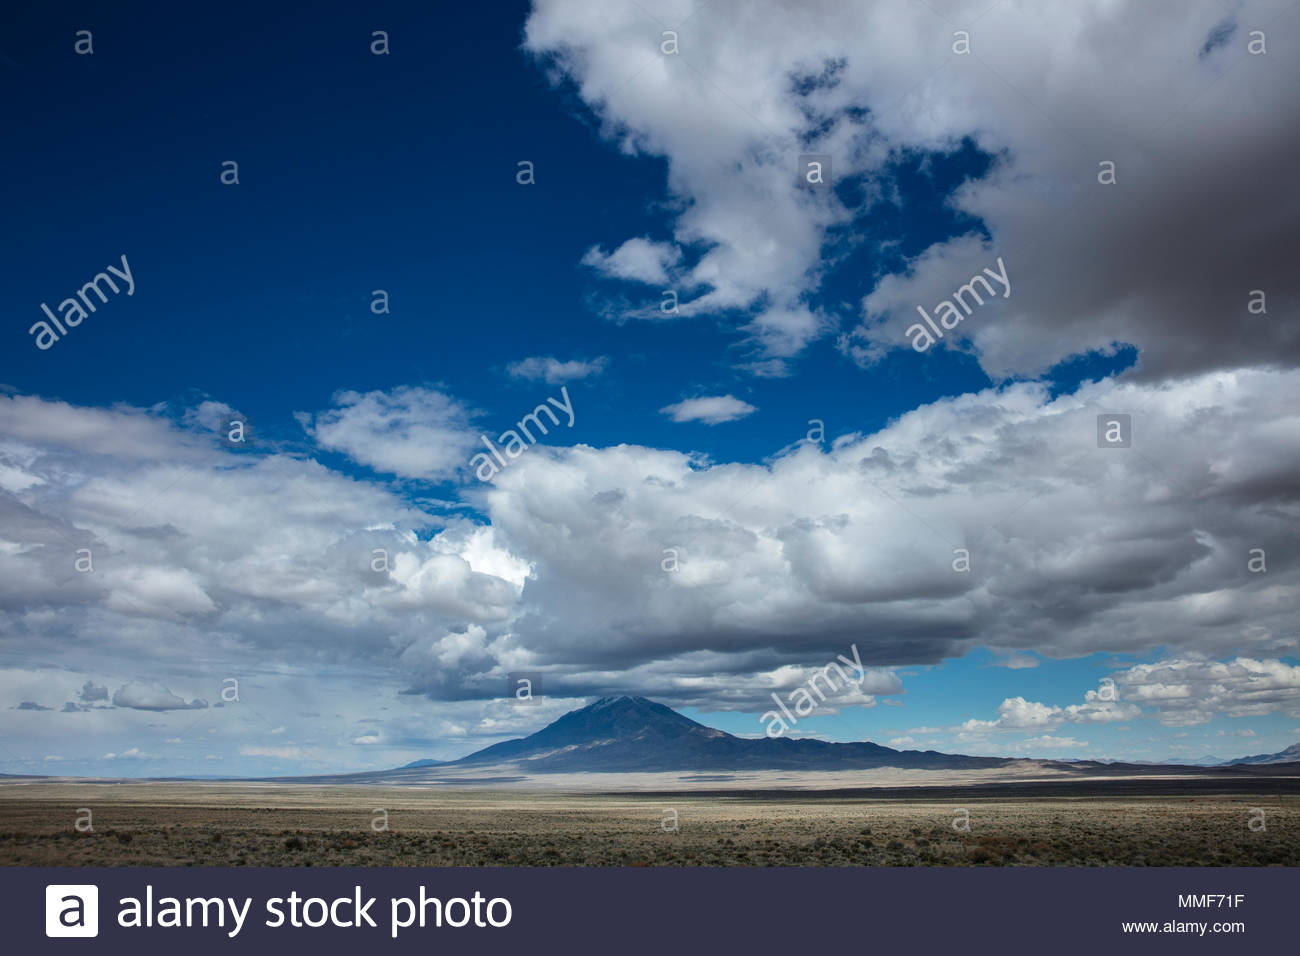 Clouds and big sky in the mountain landscape of the west . - Stock Image